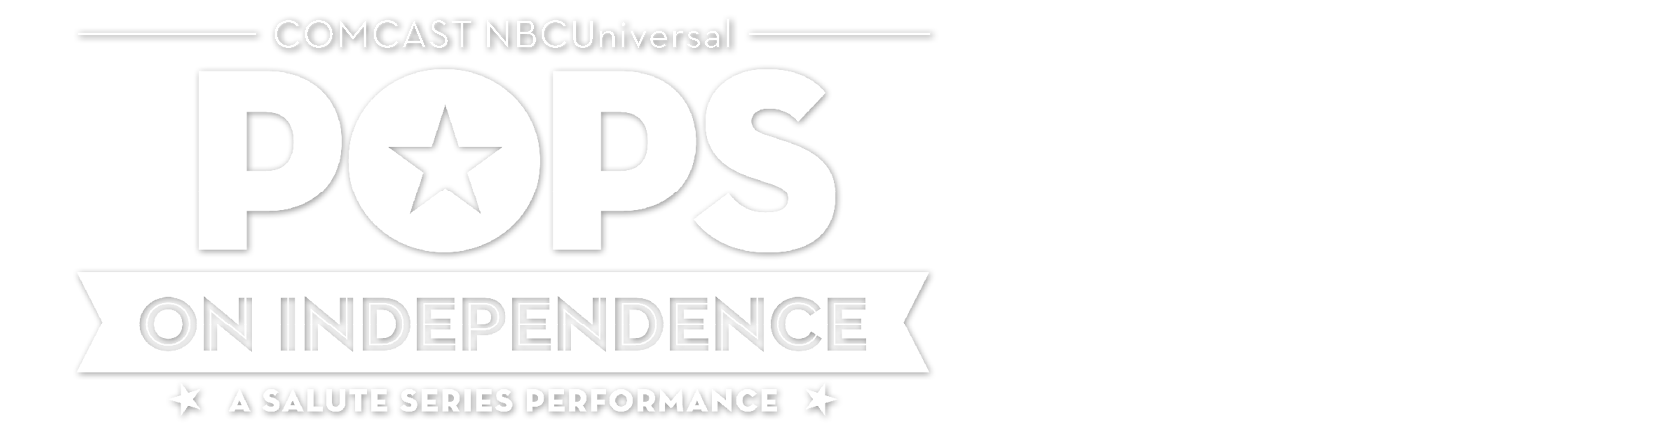 POPS on Independence 2018 Homepage Slider Text Overlay.png